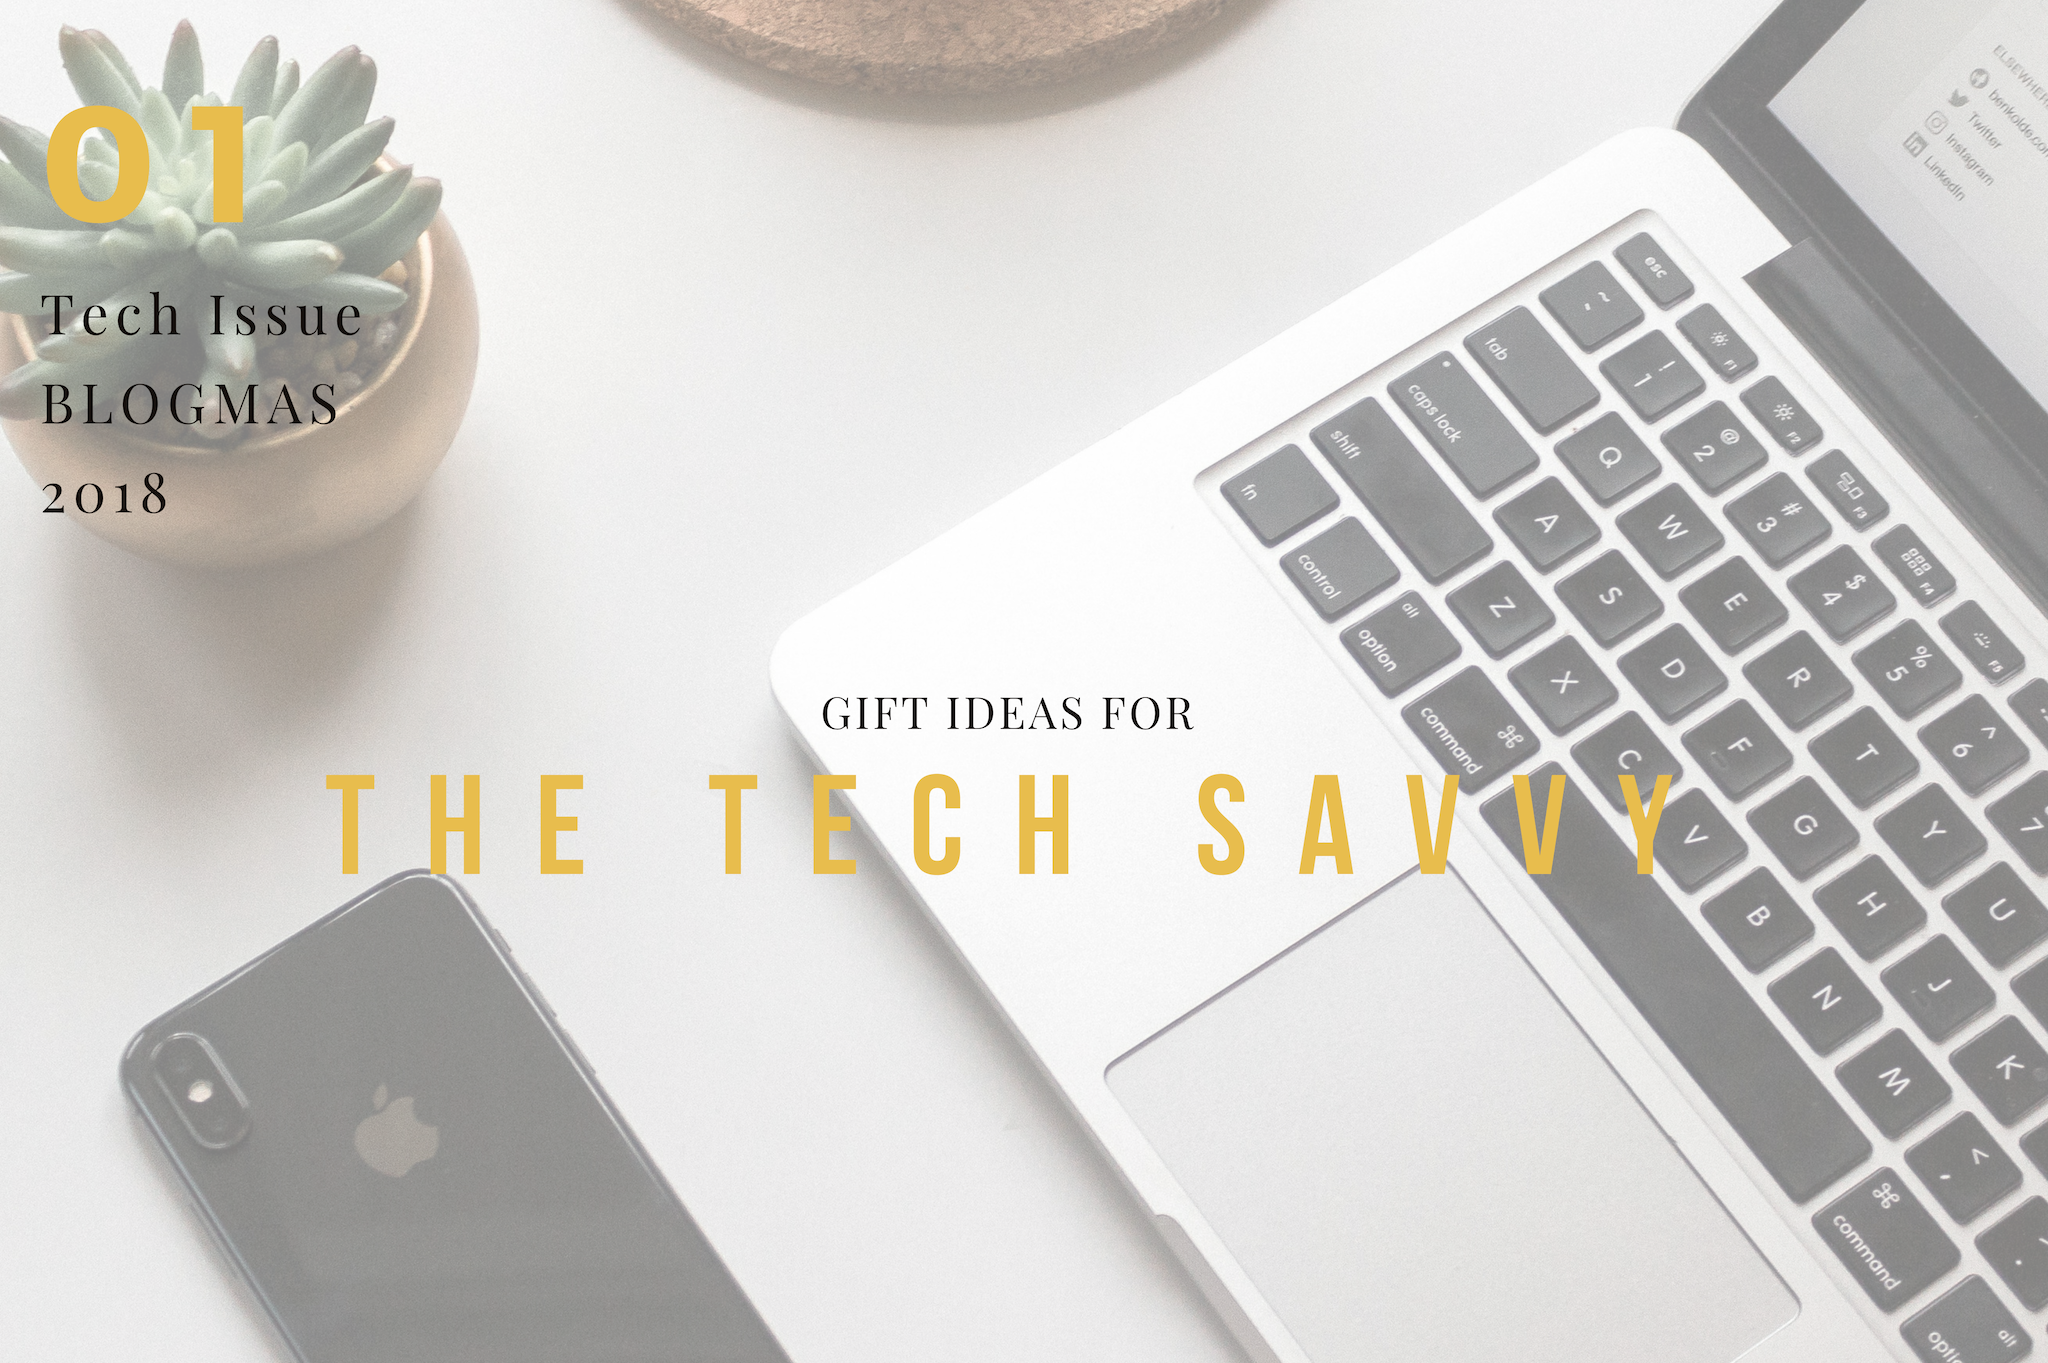 blogmas gift guide for tech savyy what to buy tech lovers for christmas gift ideas tech geeks